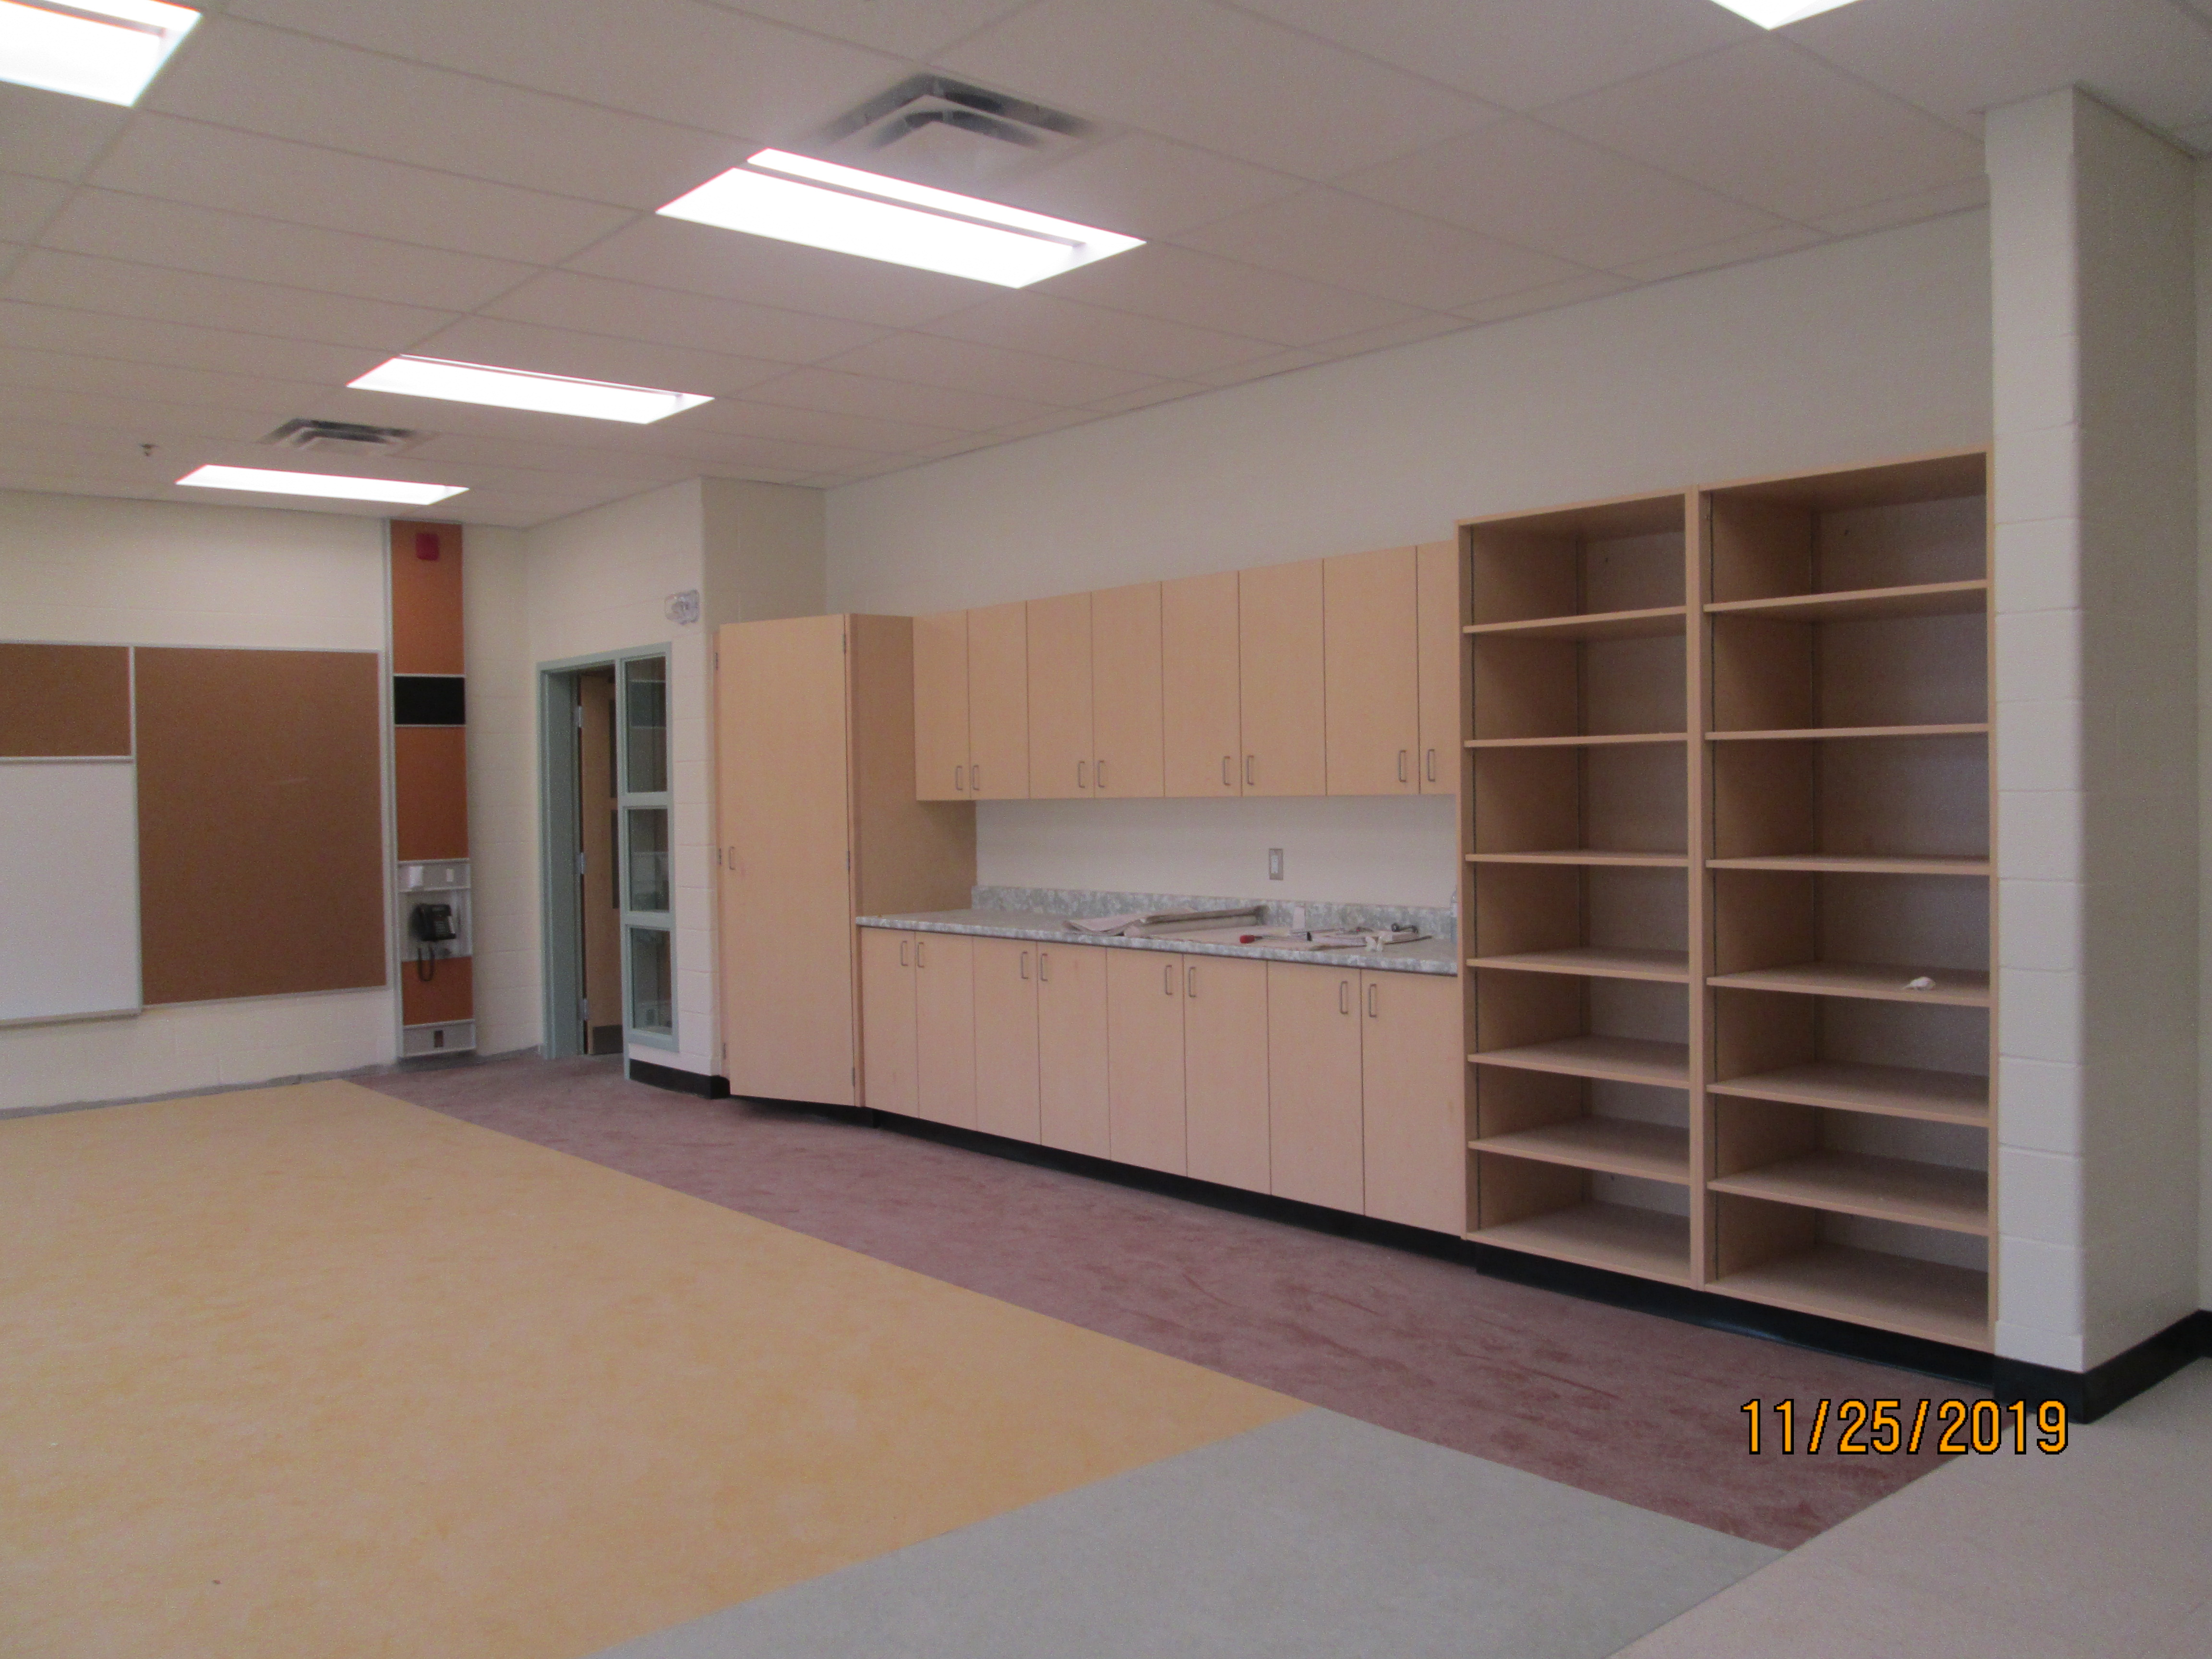 Clearview Meadows Elementary School – Addition